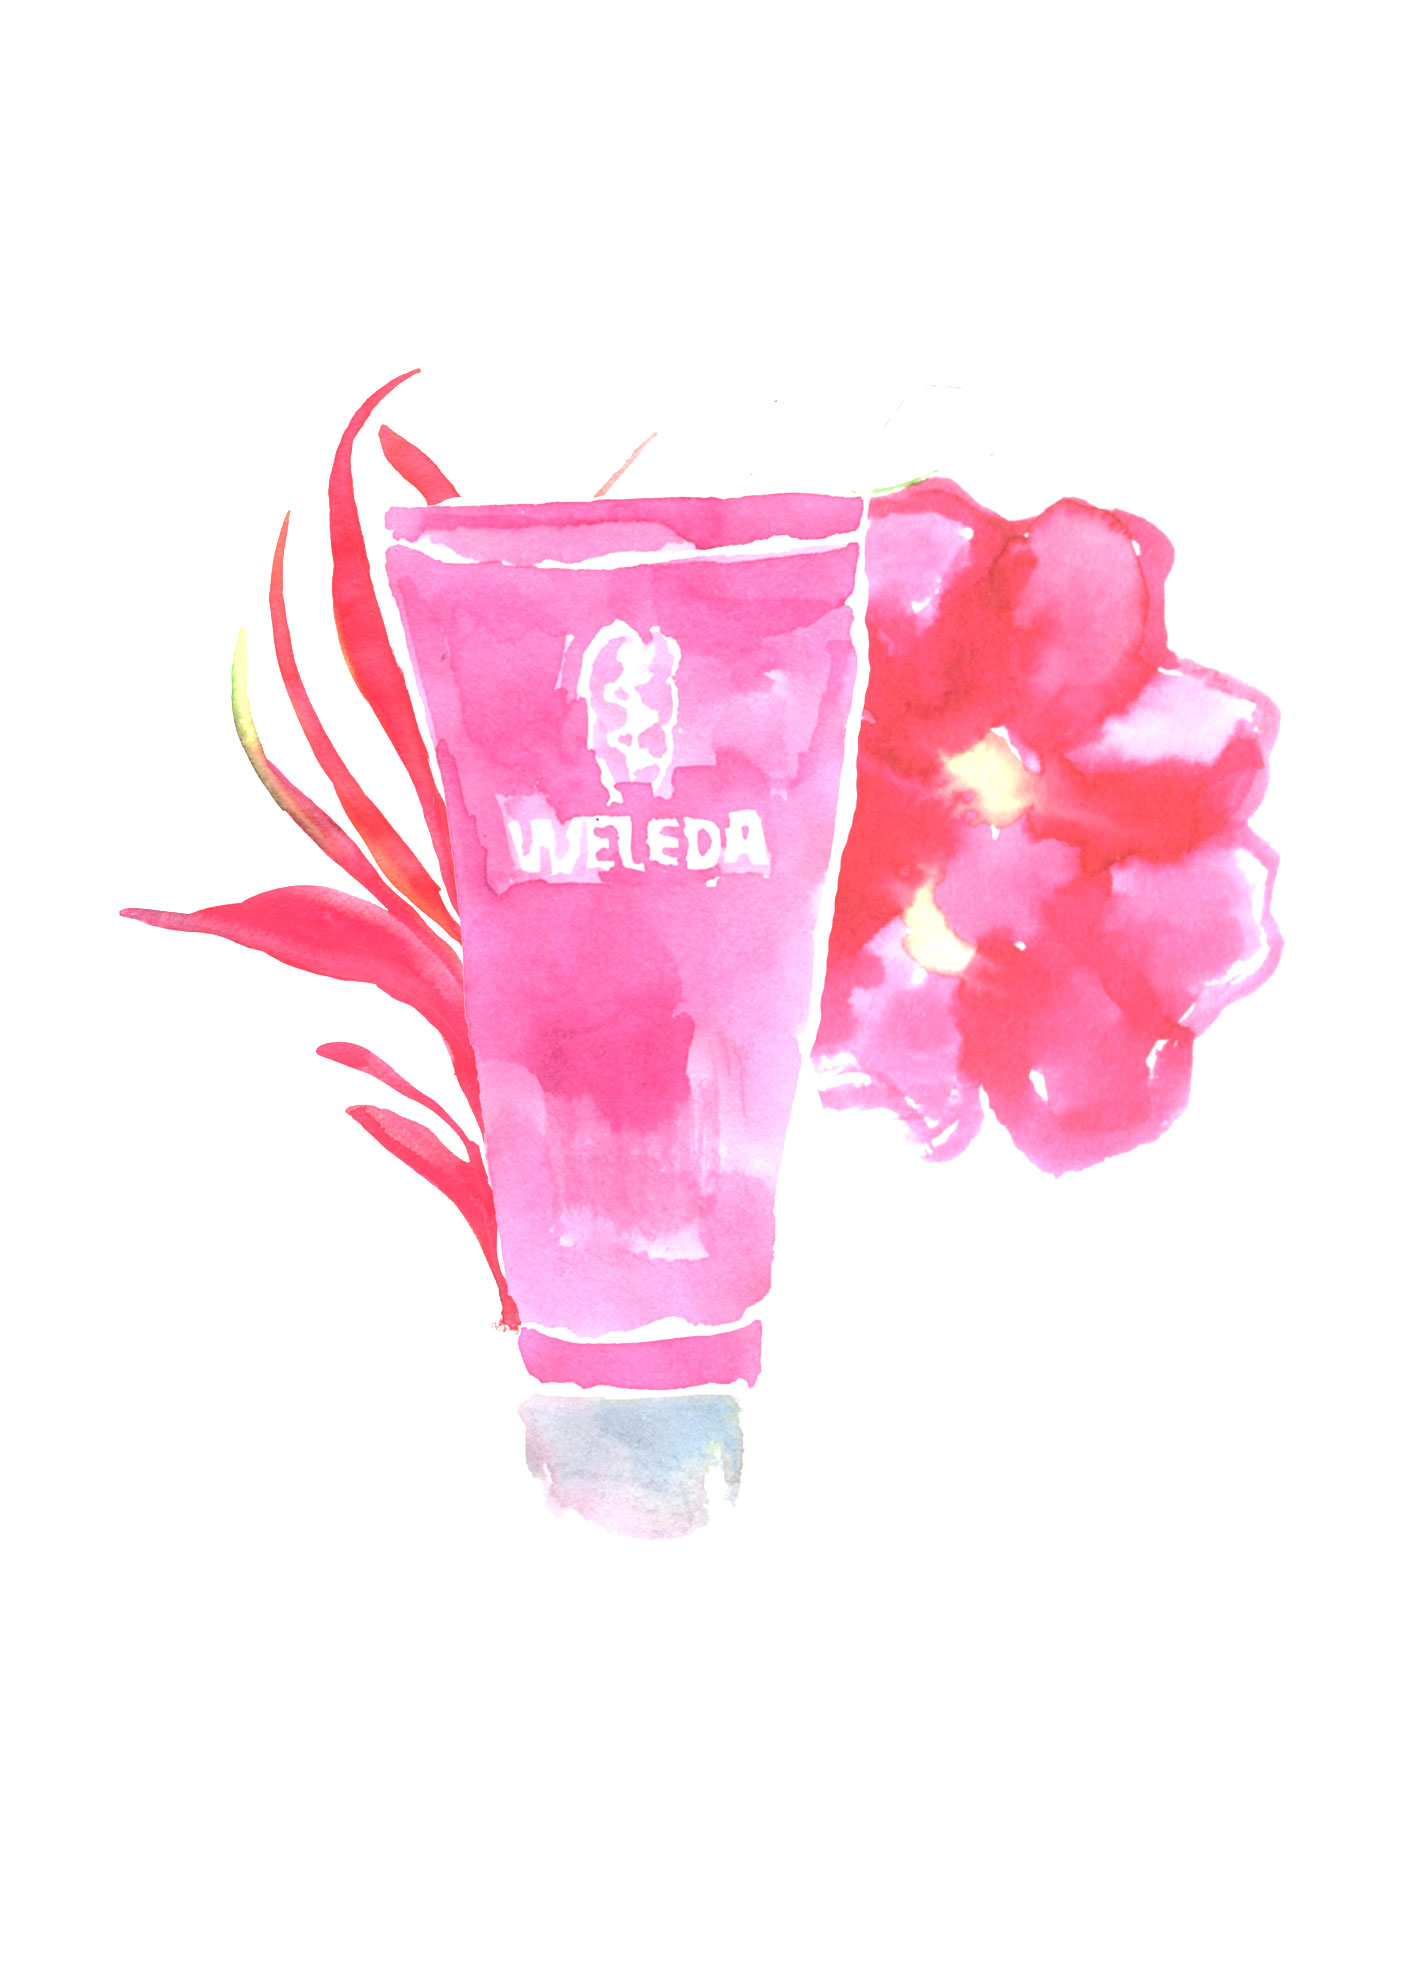 Weleda gel douche Julia Perrin